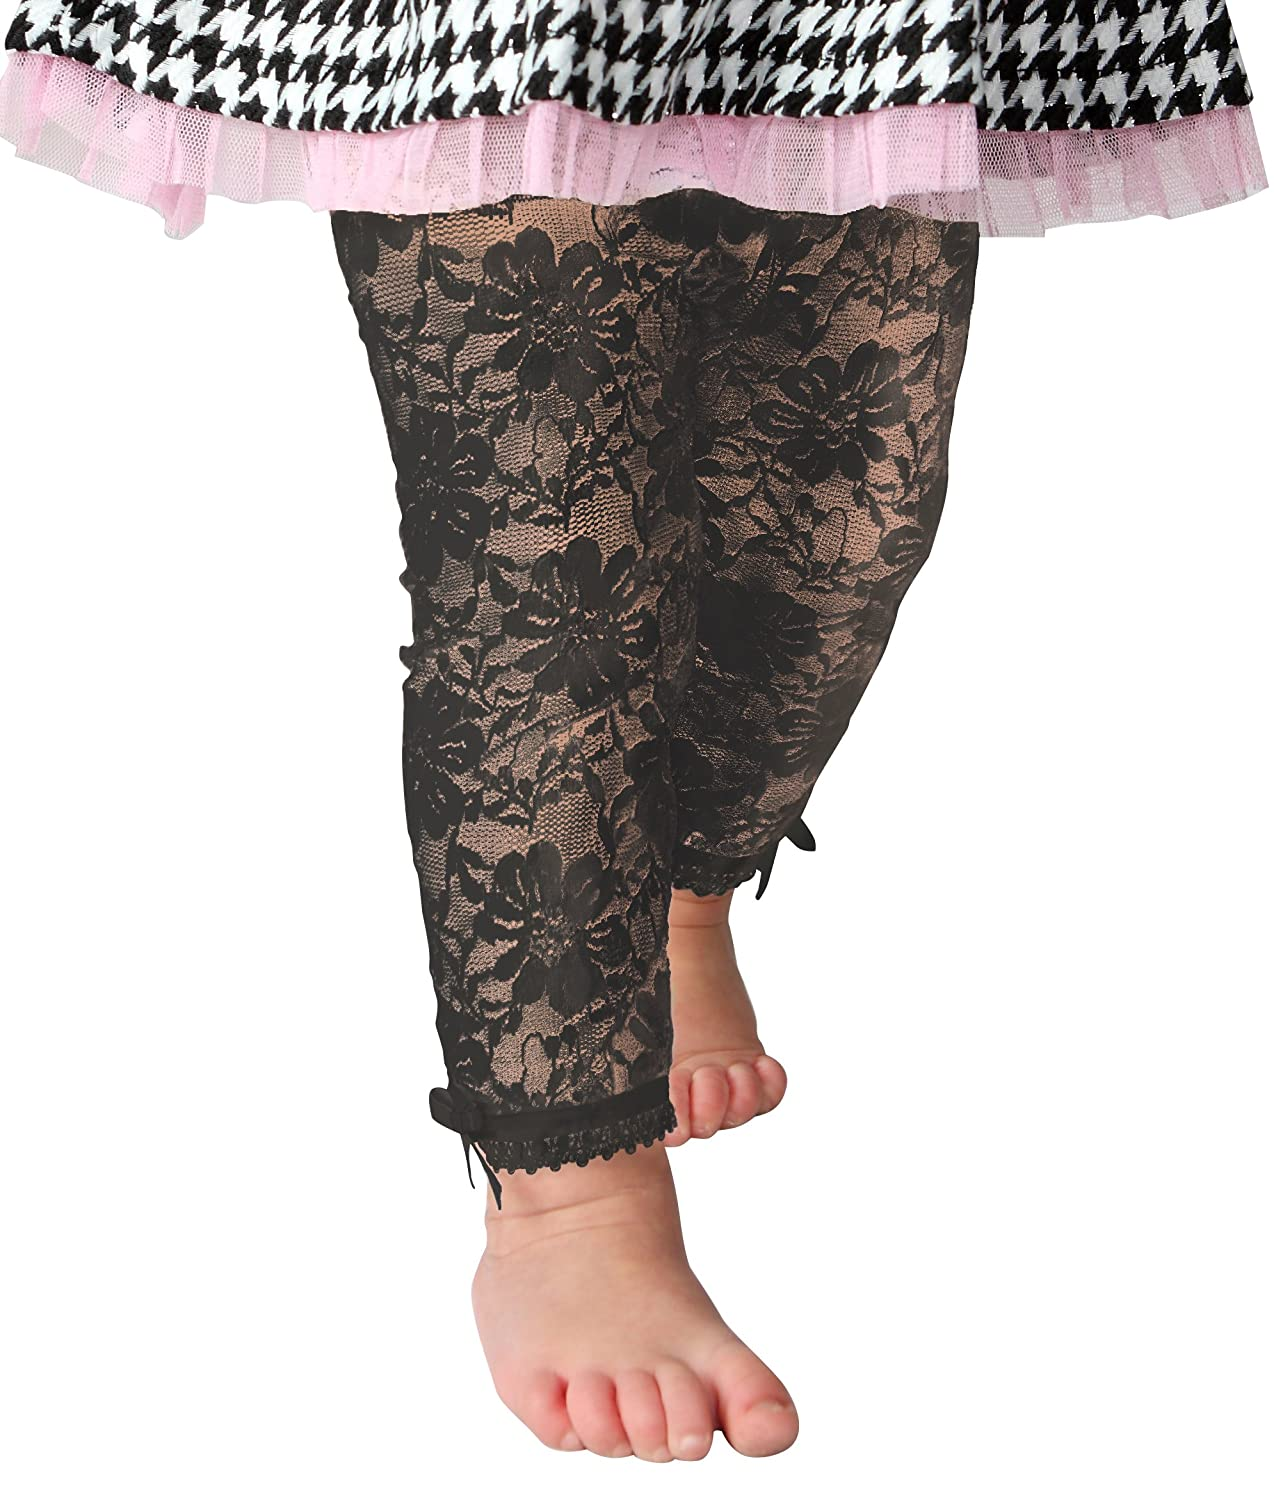 2-4 Years, Off-white lace Baby Infant /& Toddler Girl-Soft Lace Leggings-Capris-Satin Bows-Comfort Waist